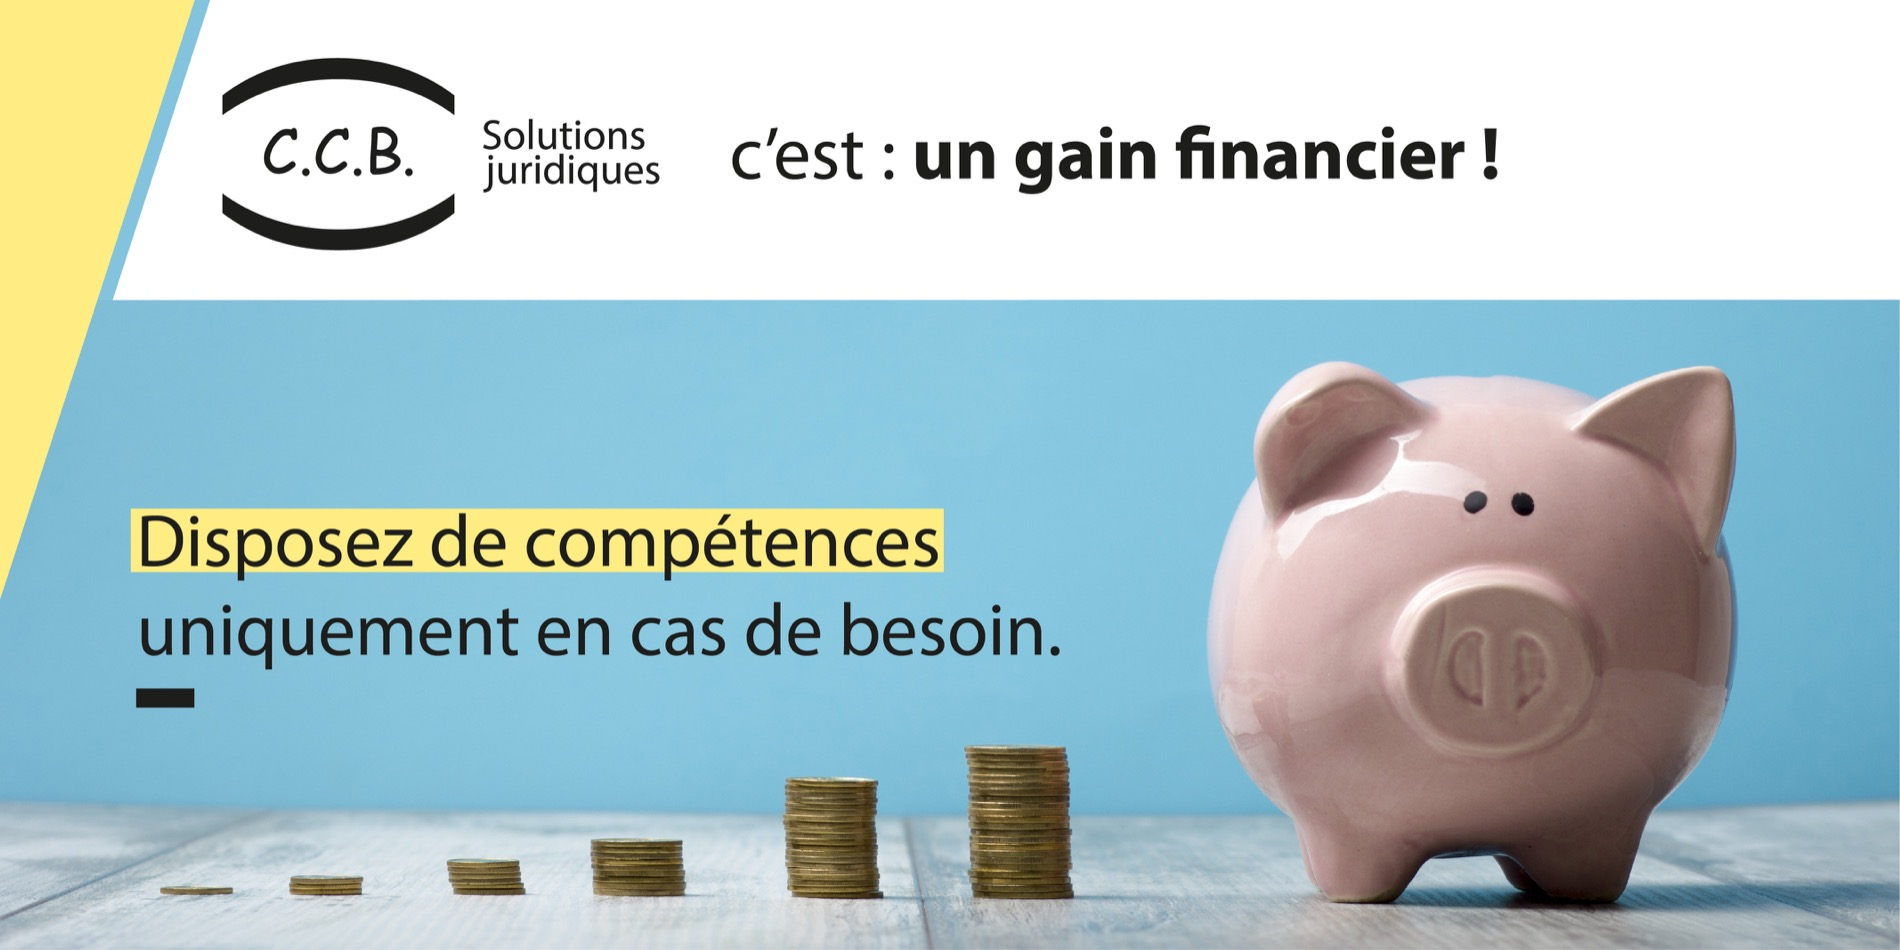 Bénéfices clients - Gain financier